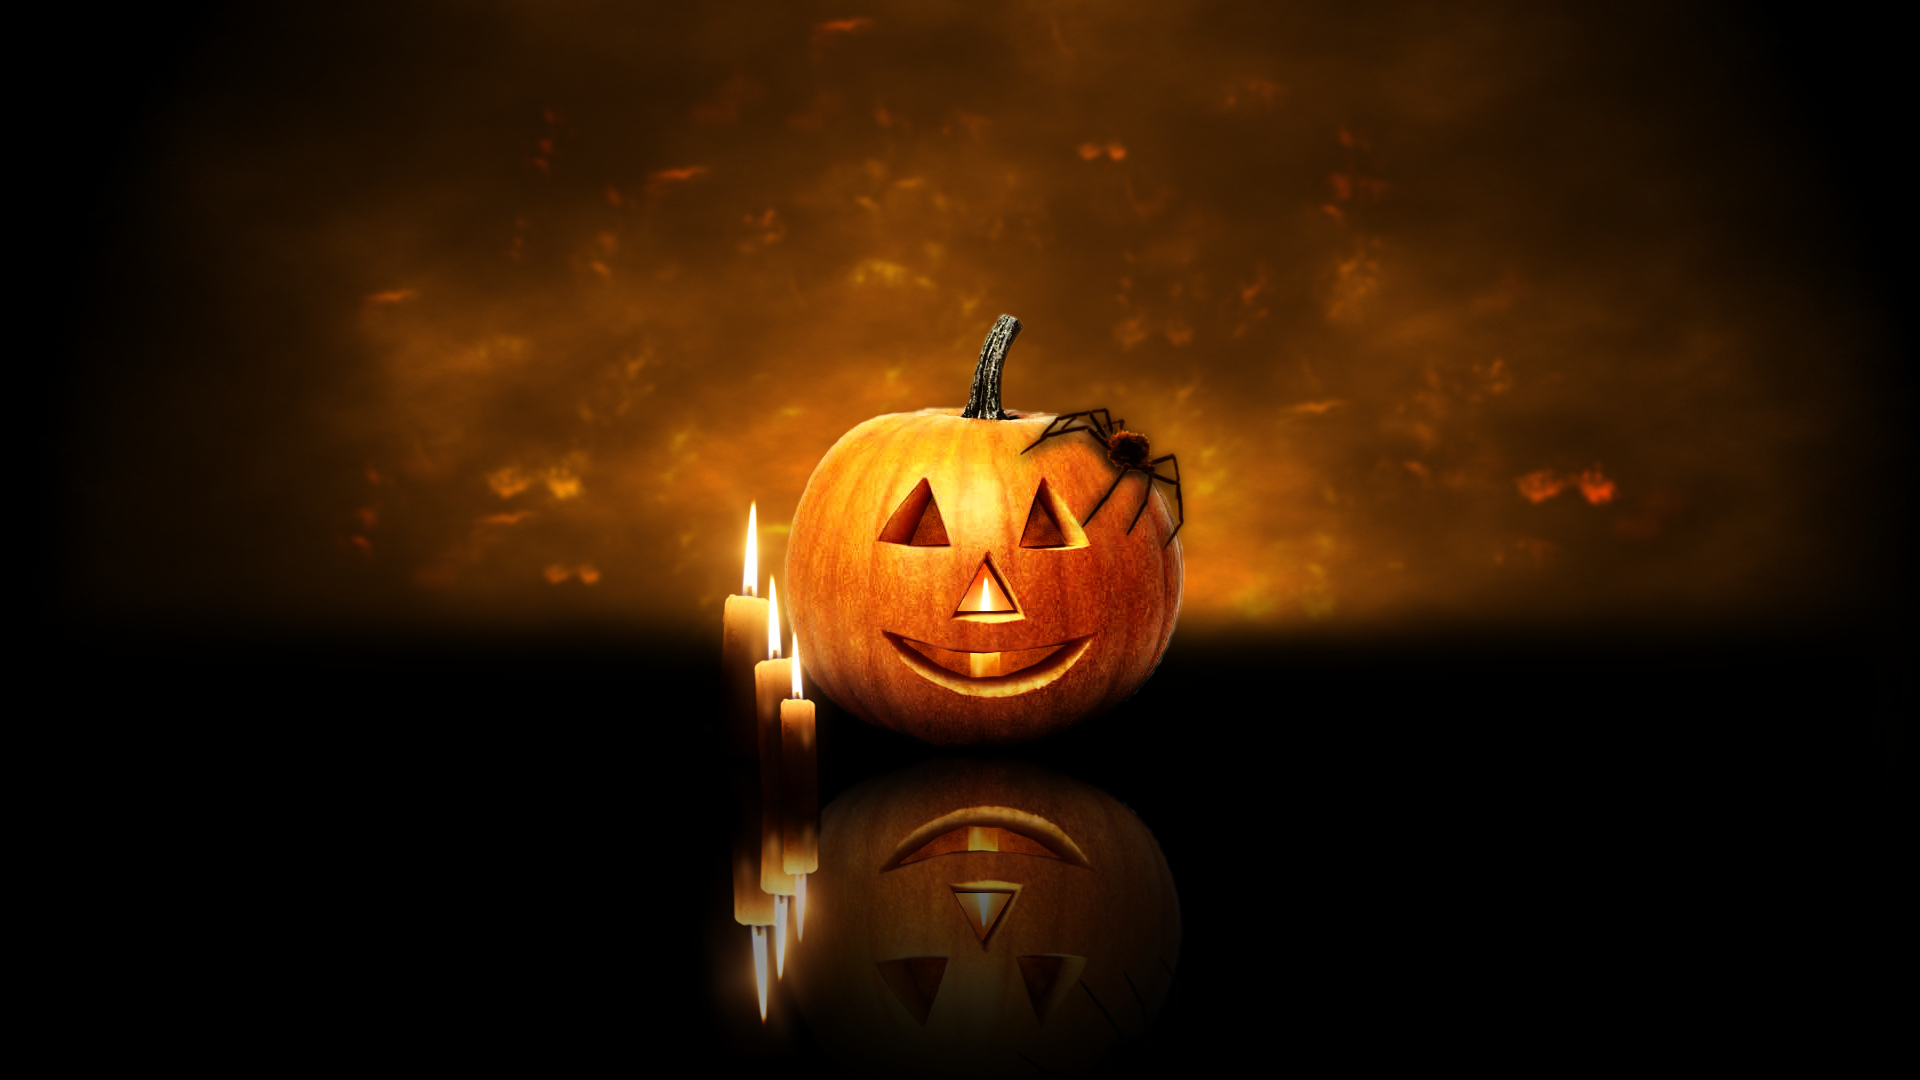 Happy-Halloween-2012-New-Pumpkin-HD-Wall